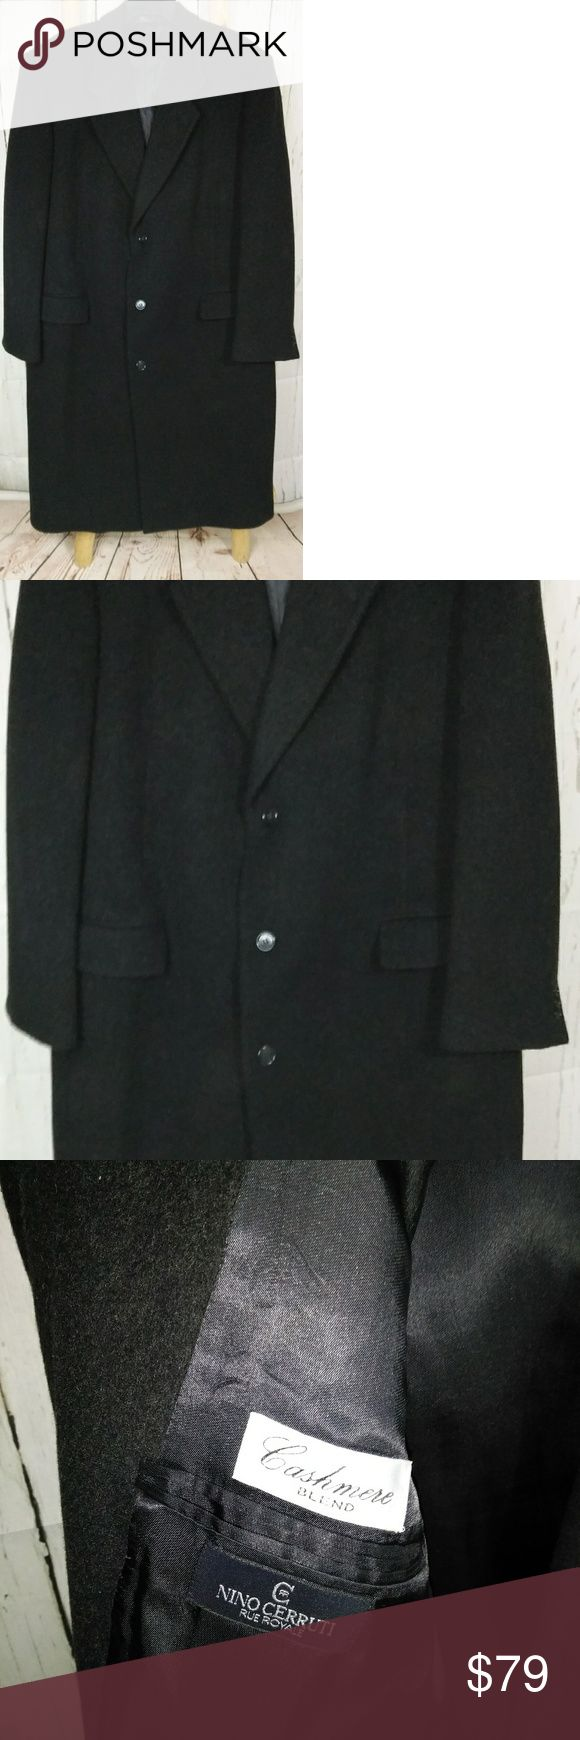 """Men's Cerruti long black cashmere/wool coat 44 L Beautiful coat in like new condition.  It has two   slit flap pockets on the outside and two pockets on the inside.  Beautifully lined, vented in the center back.  It is a size 44 long.  Measurements are 52"""" chest,  49"""" waist,  21"""" shoulders,  48"""" length and 28"""" sleeves.  Made by Nino Cerruti. Nino Cerruti Jackets & Coats Trench Coats"""